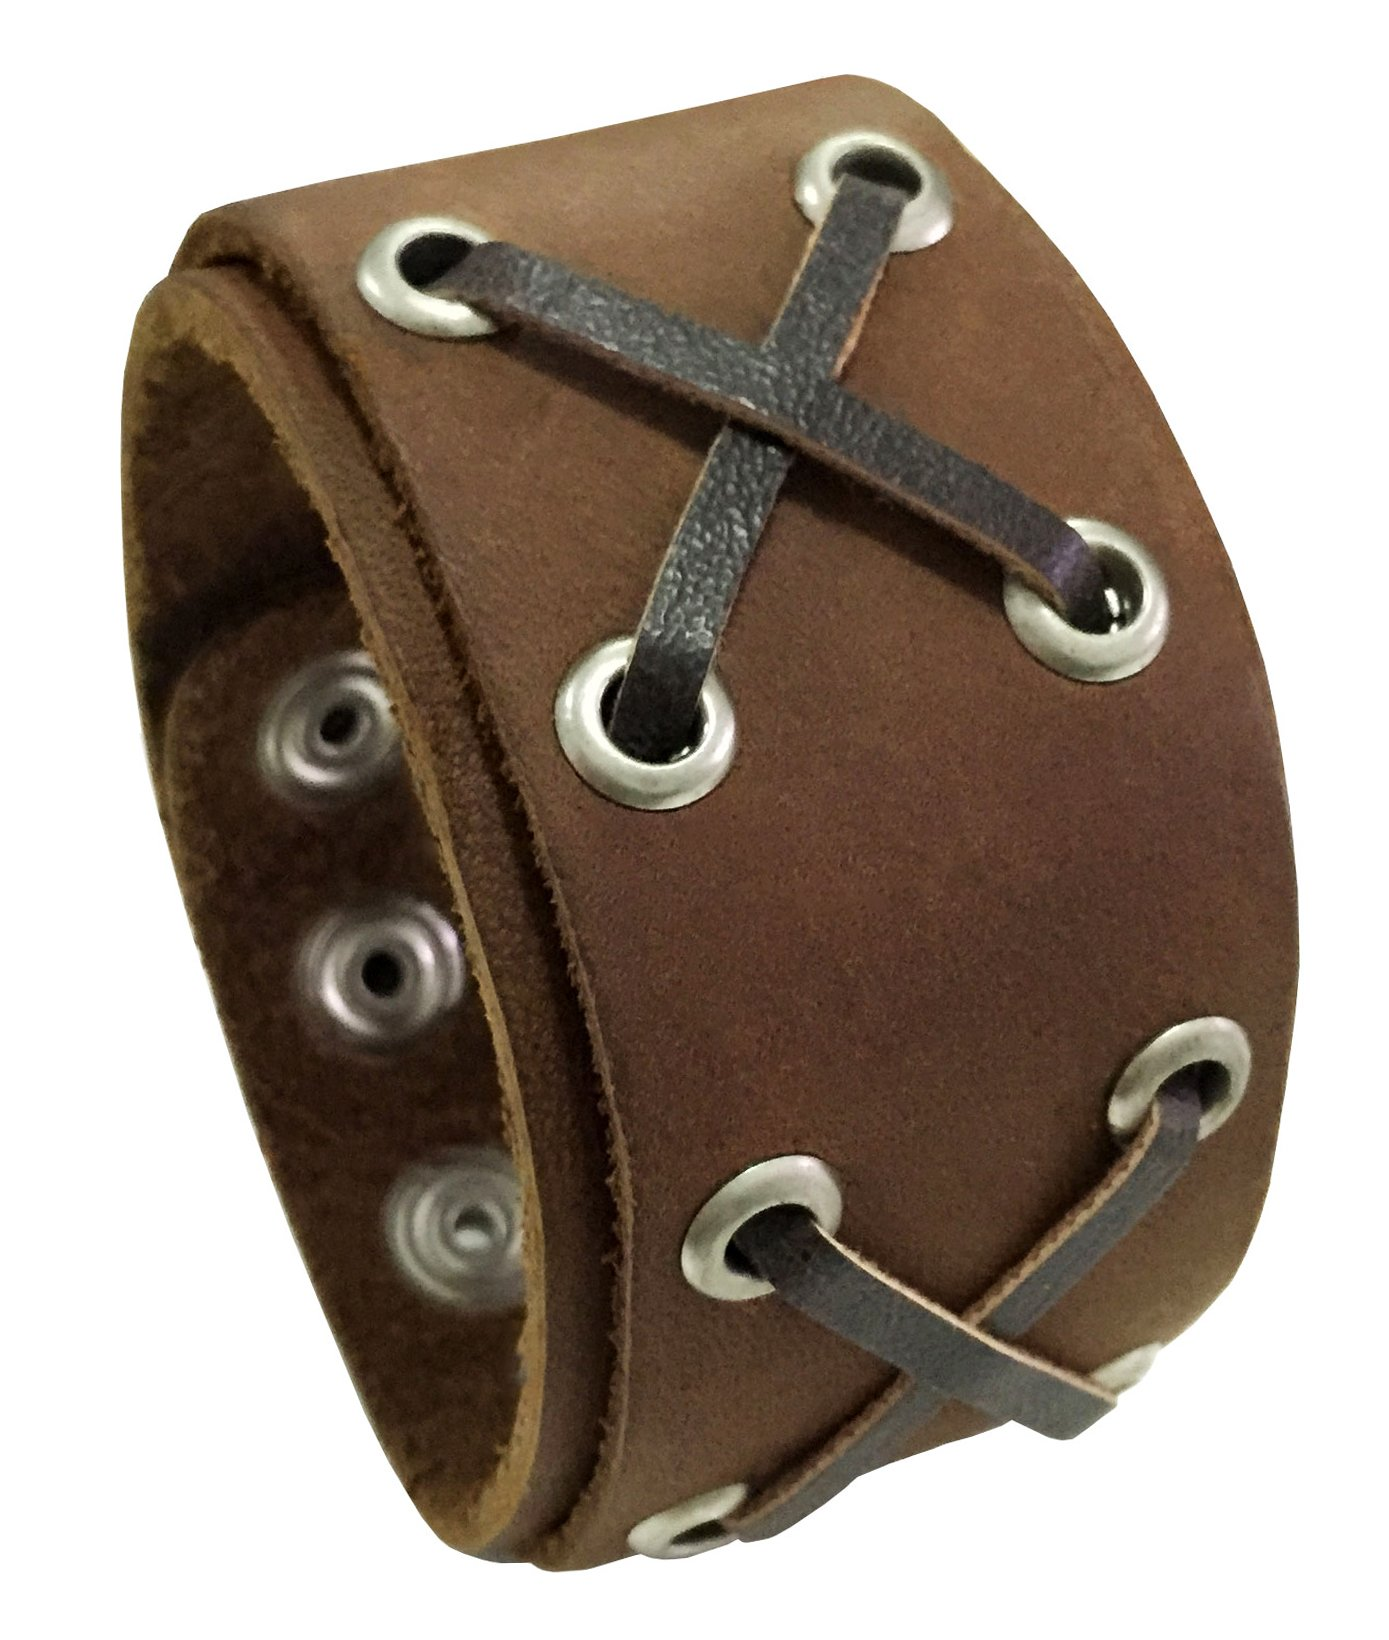 D'SHARK 1.8'' Wide X Design Biker Leather Buckle Bangle Bracelet Cuff Wristband for Unisex - Brown